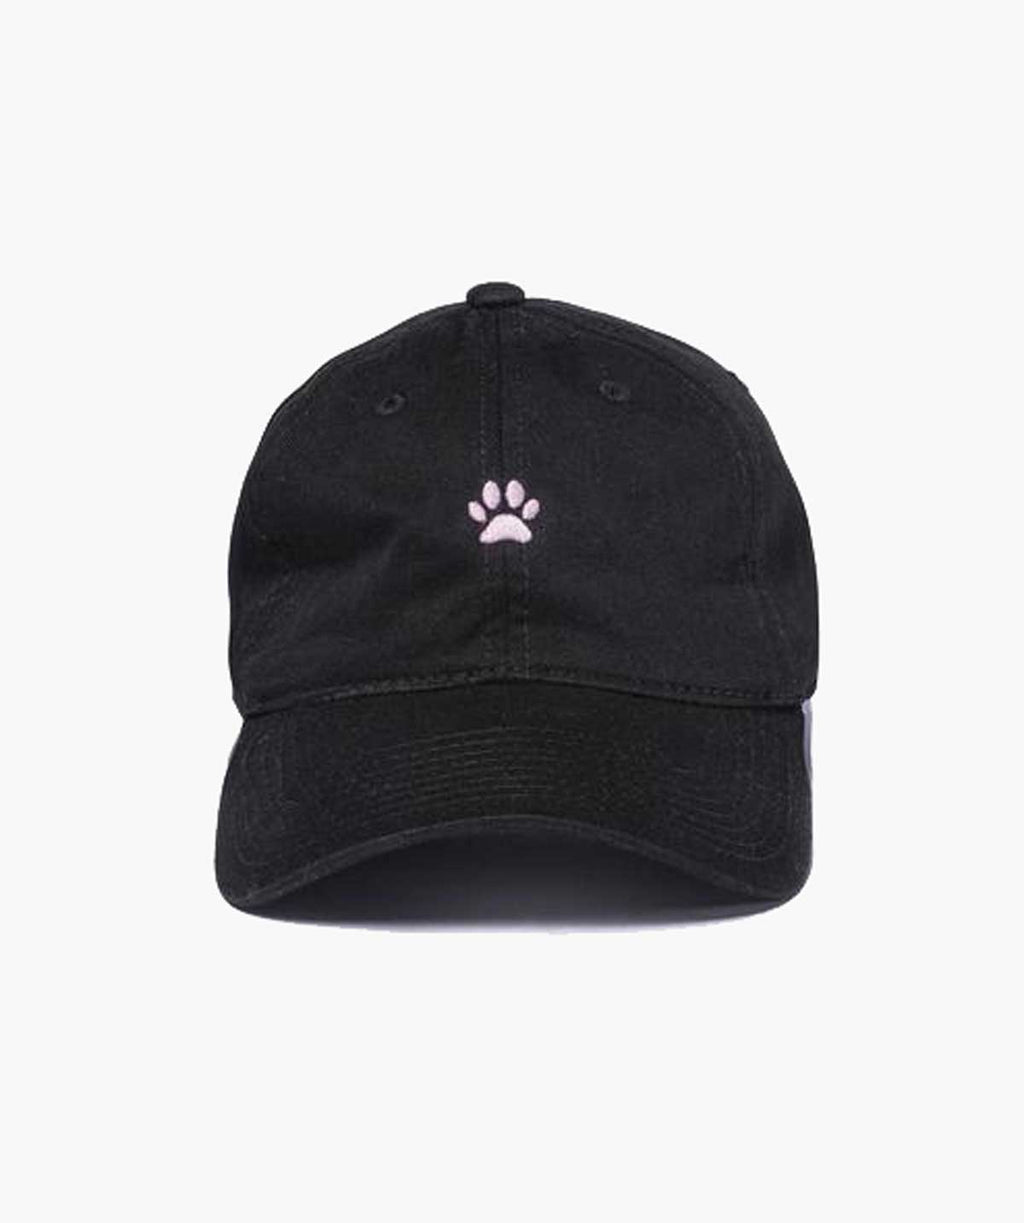 Dad Hat - Black/Pink - MODLEASH